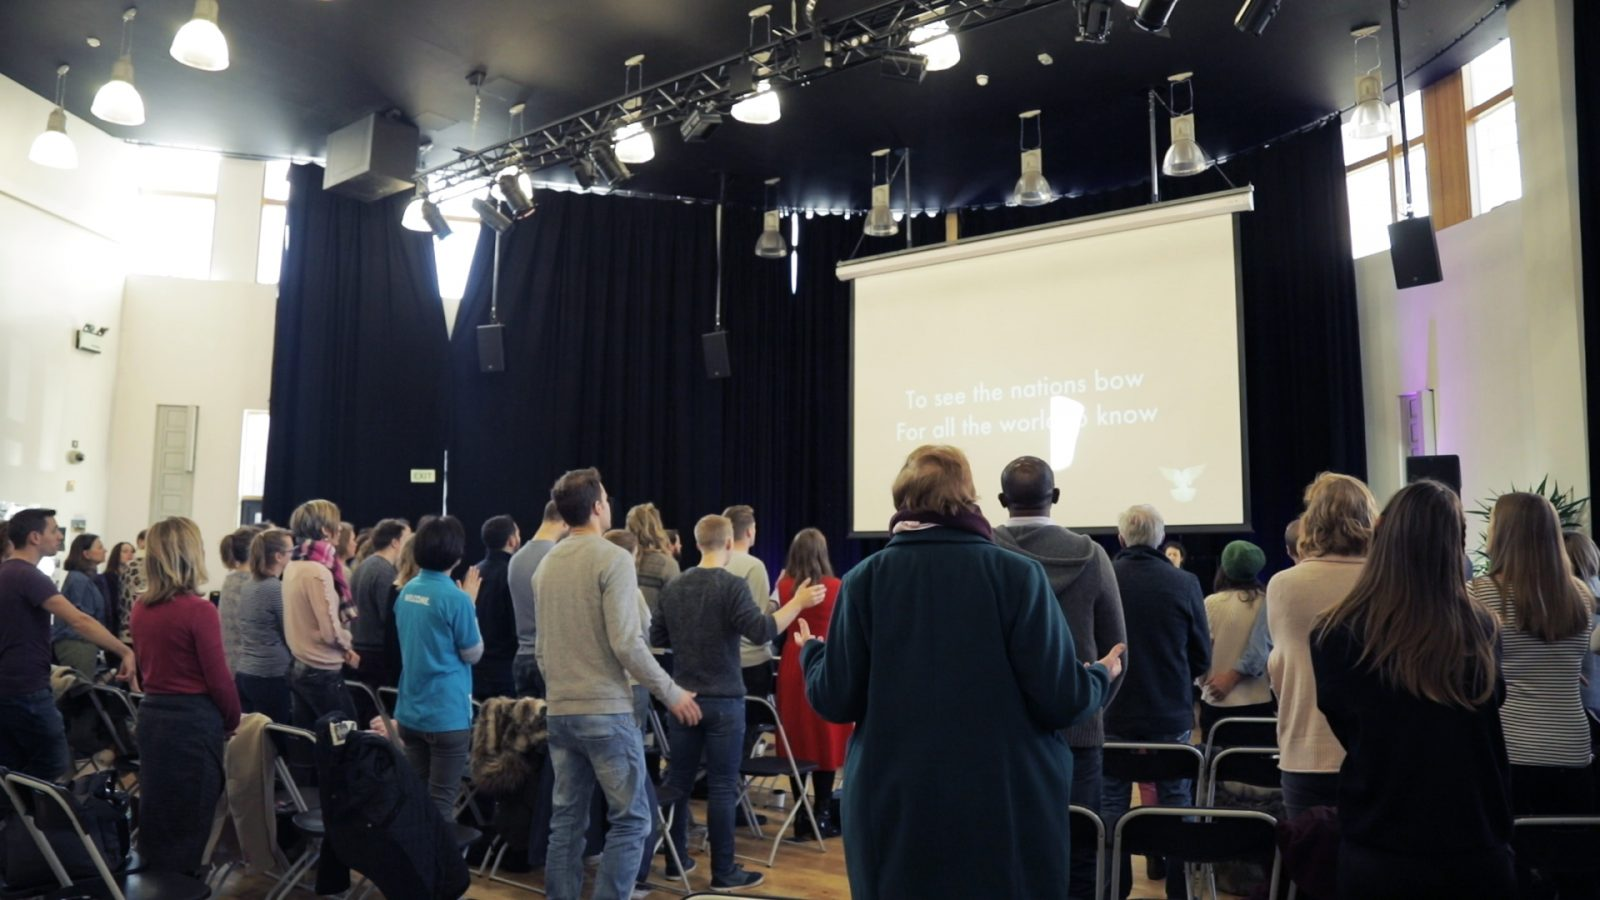 People worshipping in a school hall in Stockwell.